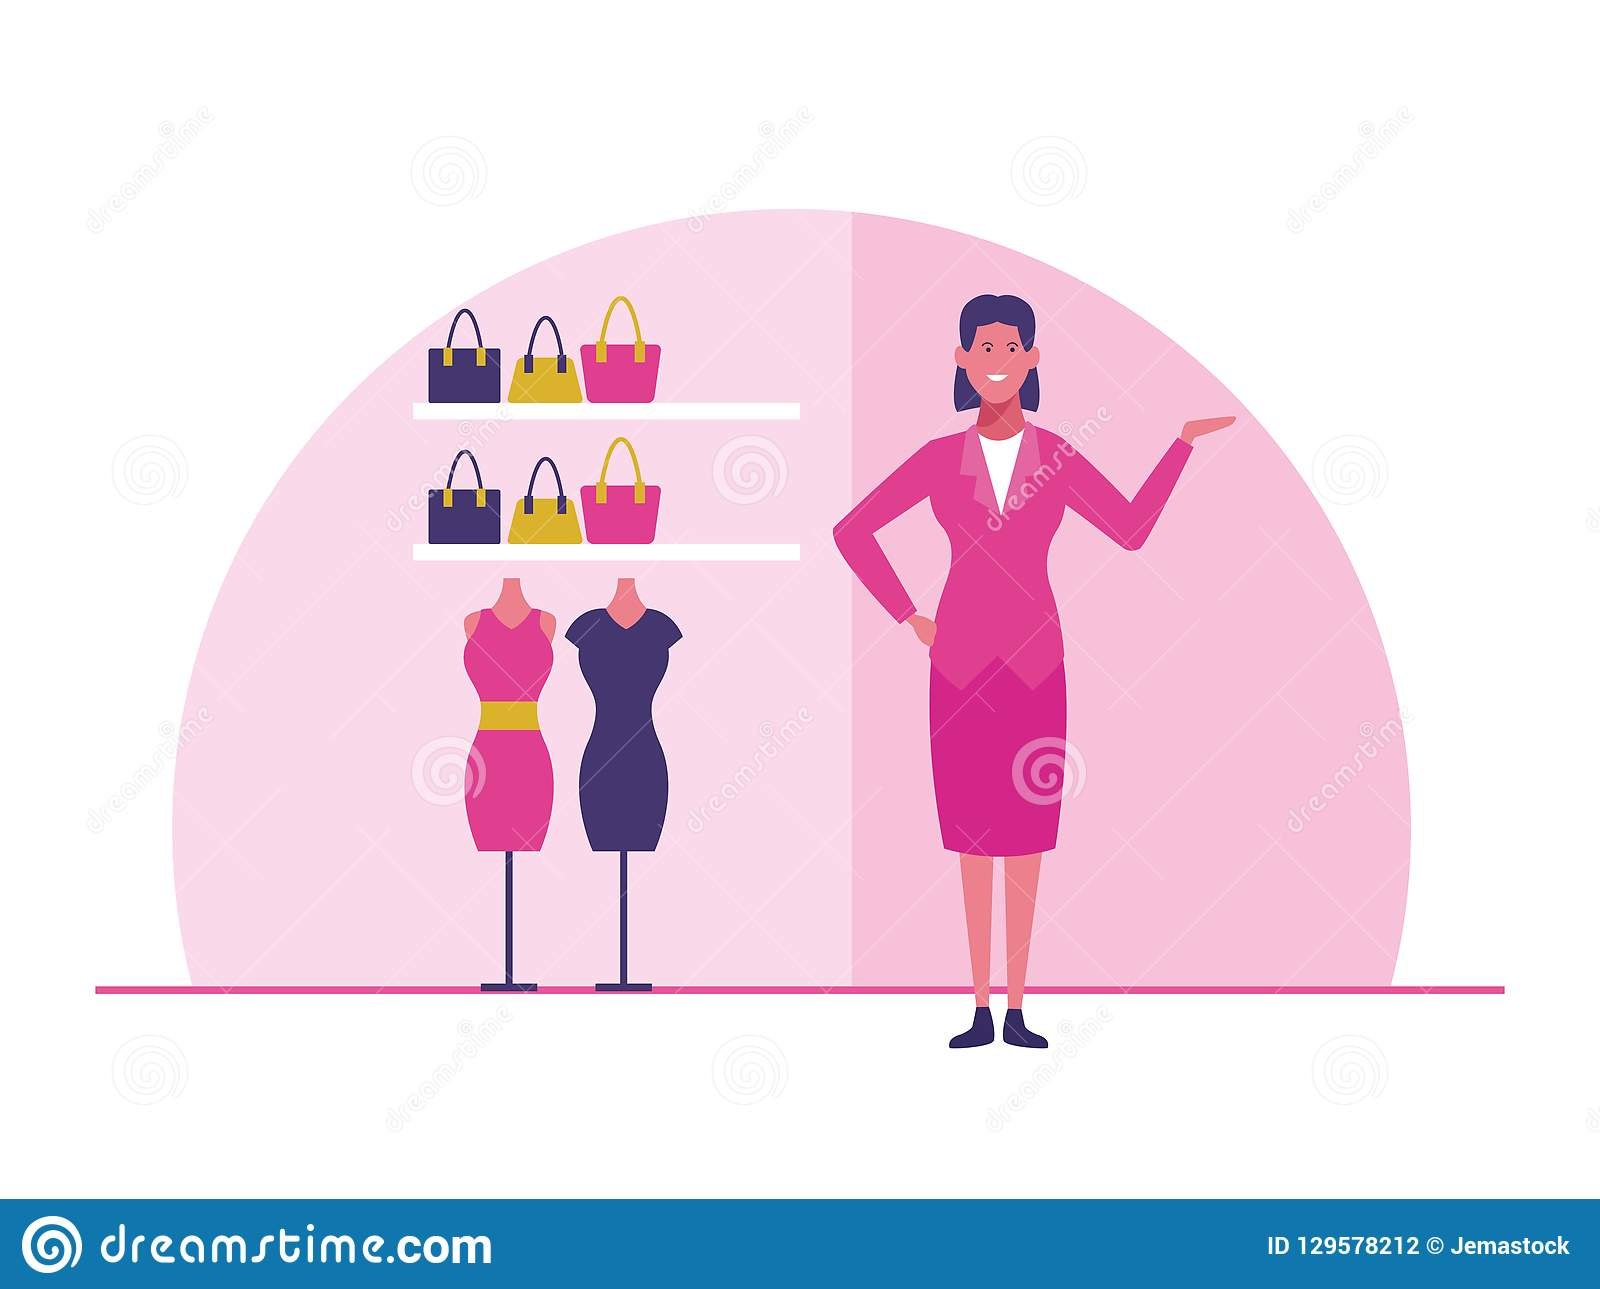 ff33b6255 Clothing store staff stock vector. Illustration of clothing - 129578212